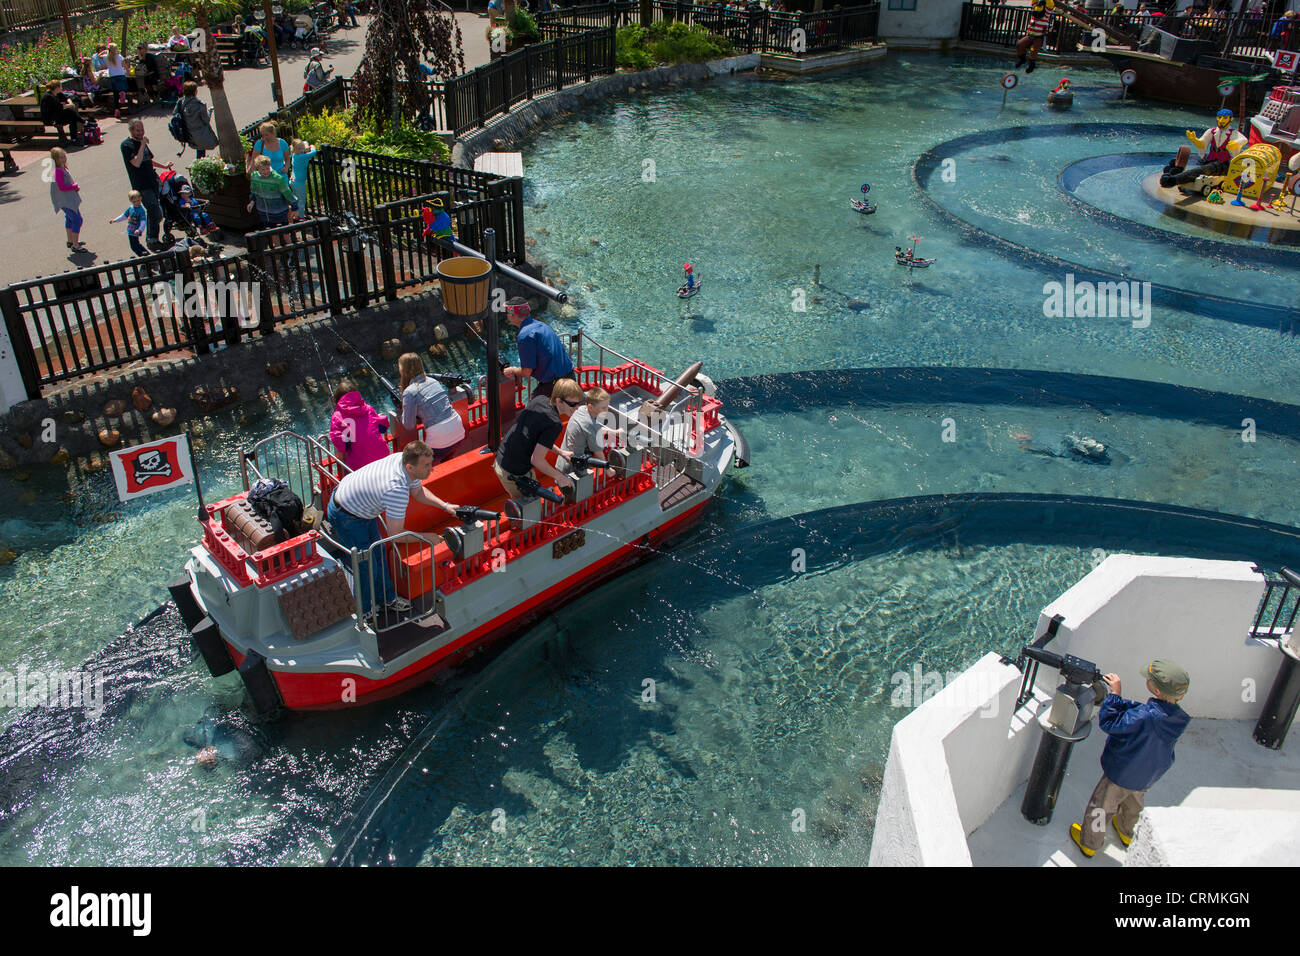 Water fights aboard Lego boats at Pirateland with skull gateway, Legoland, Billund, Denmark - Stock Image